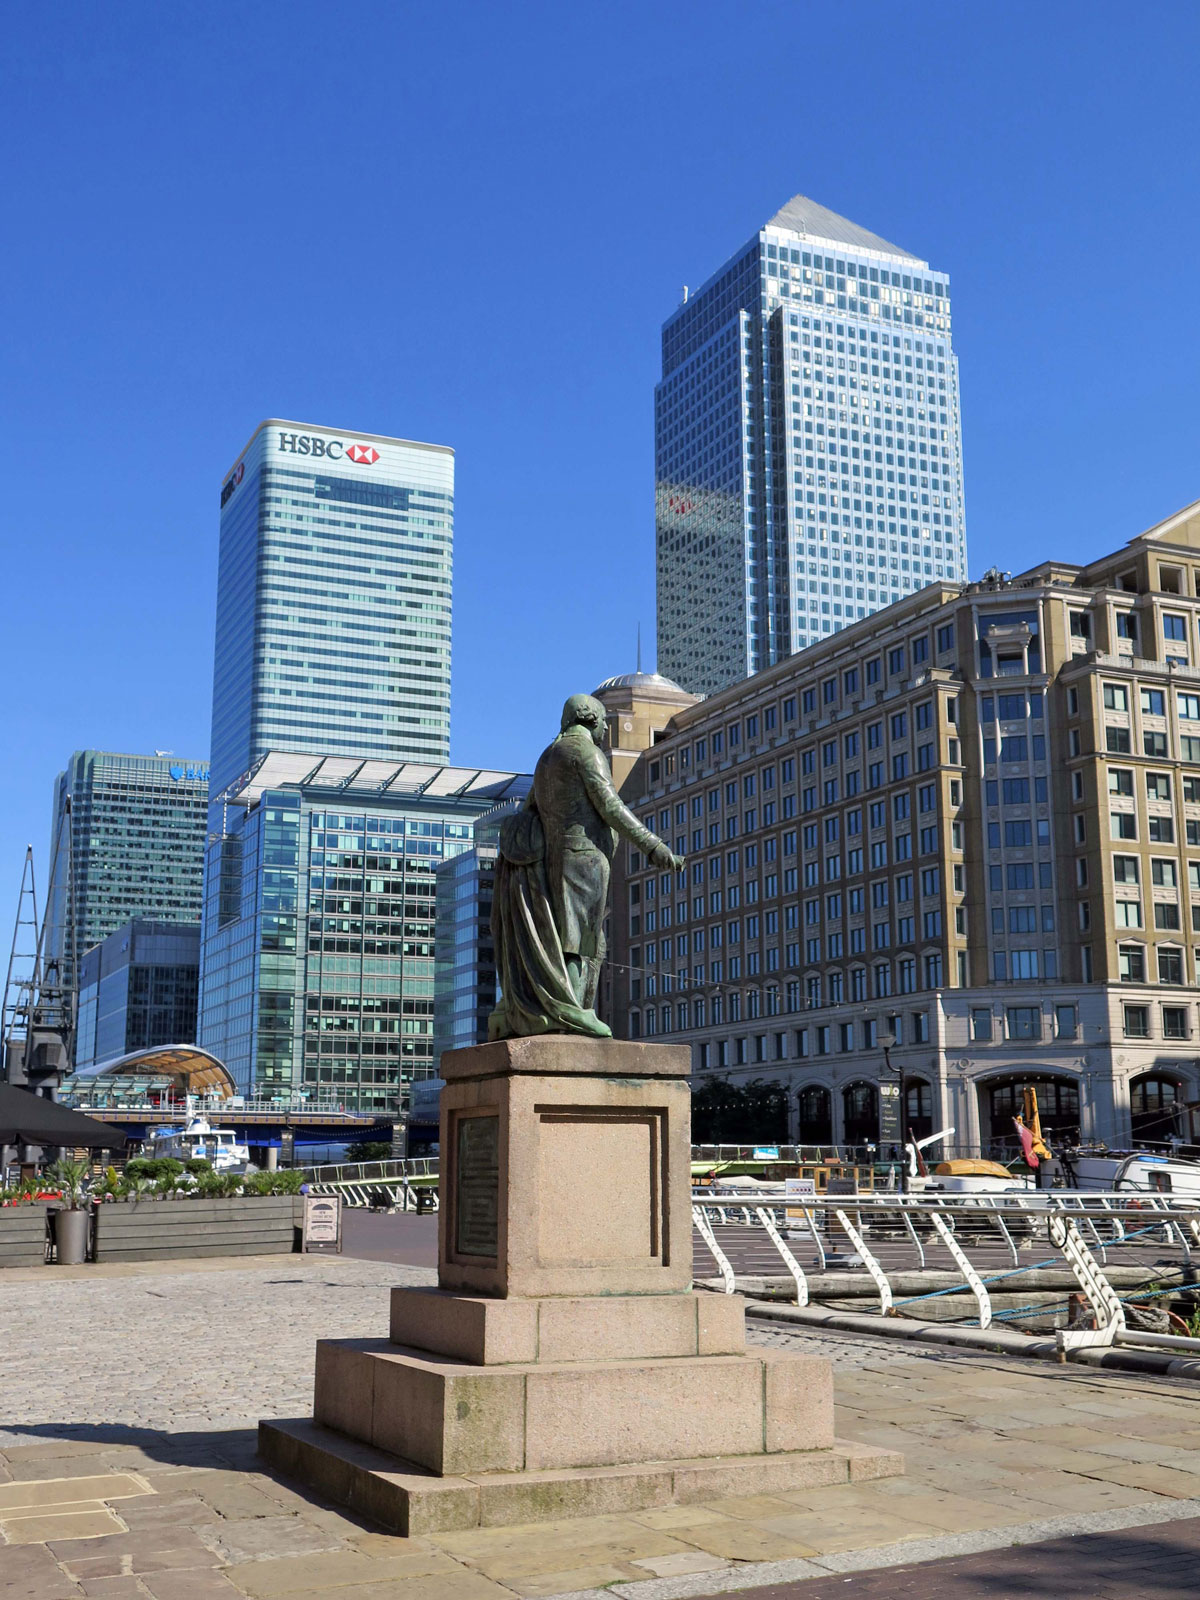 Statue of Robert Milligan on West India Quay